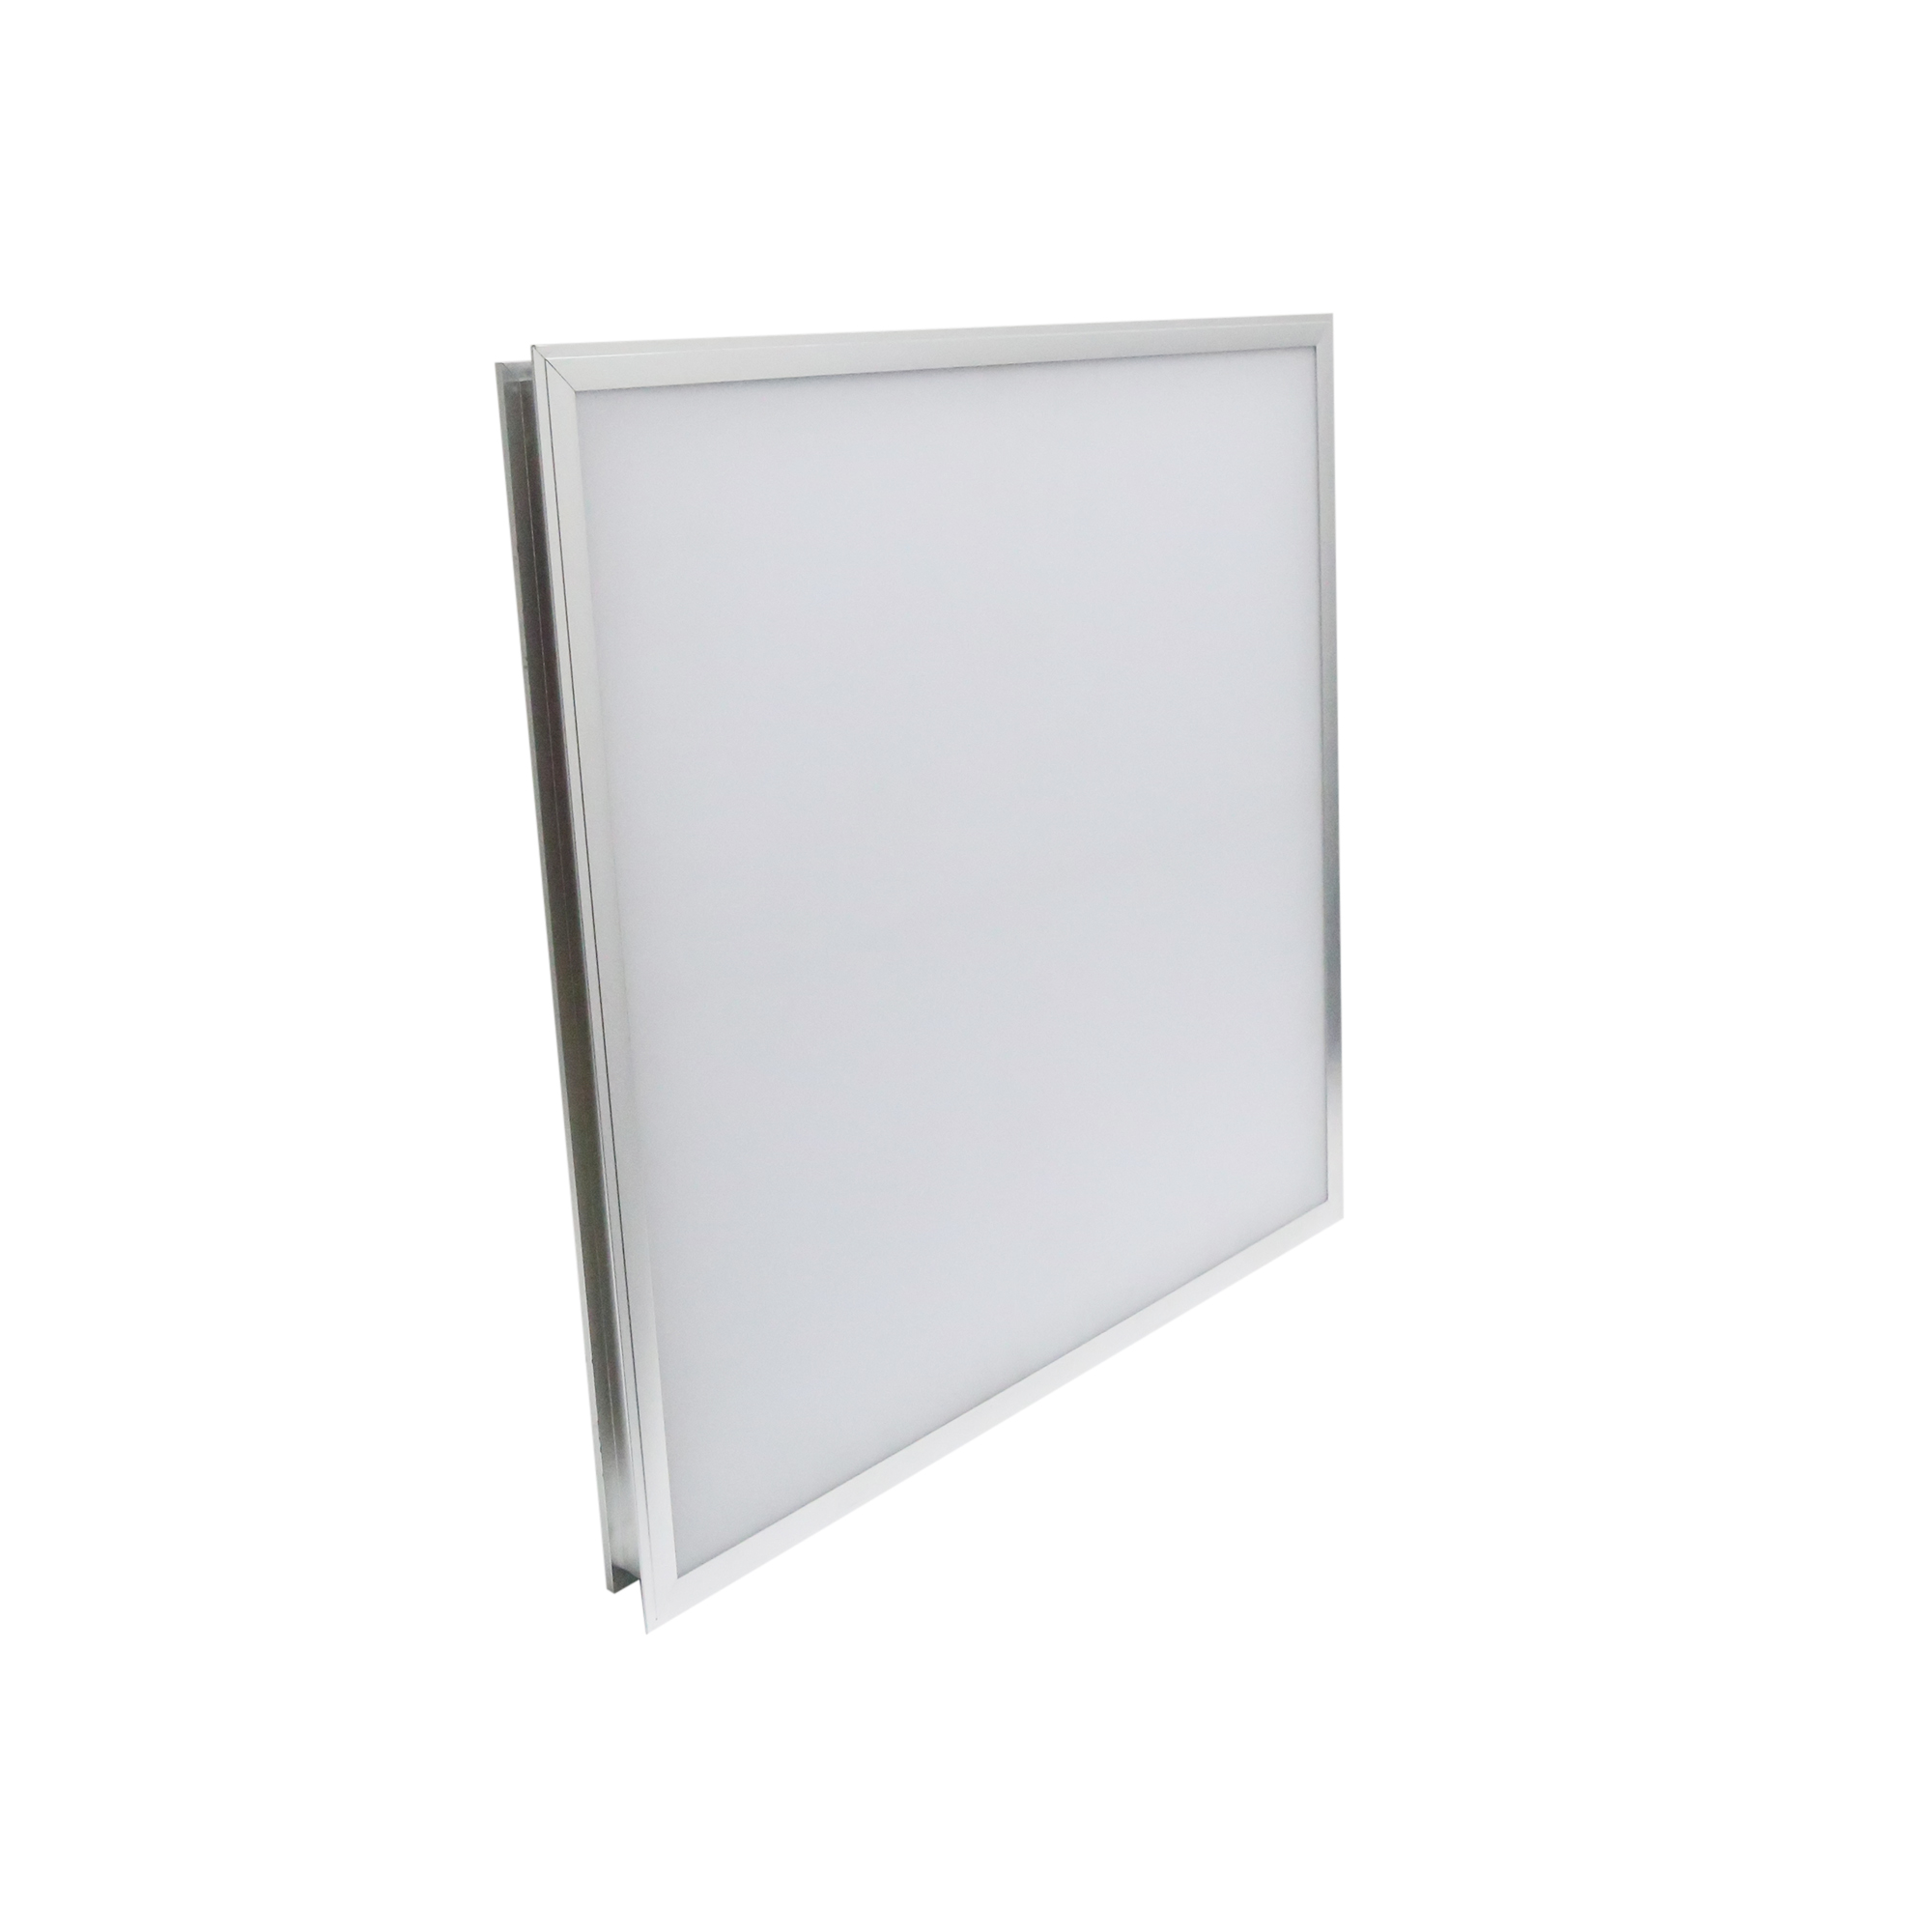 Excellent quality 3D video <strong>screen</strong> rgb led panel remote control led rgb panel light